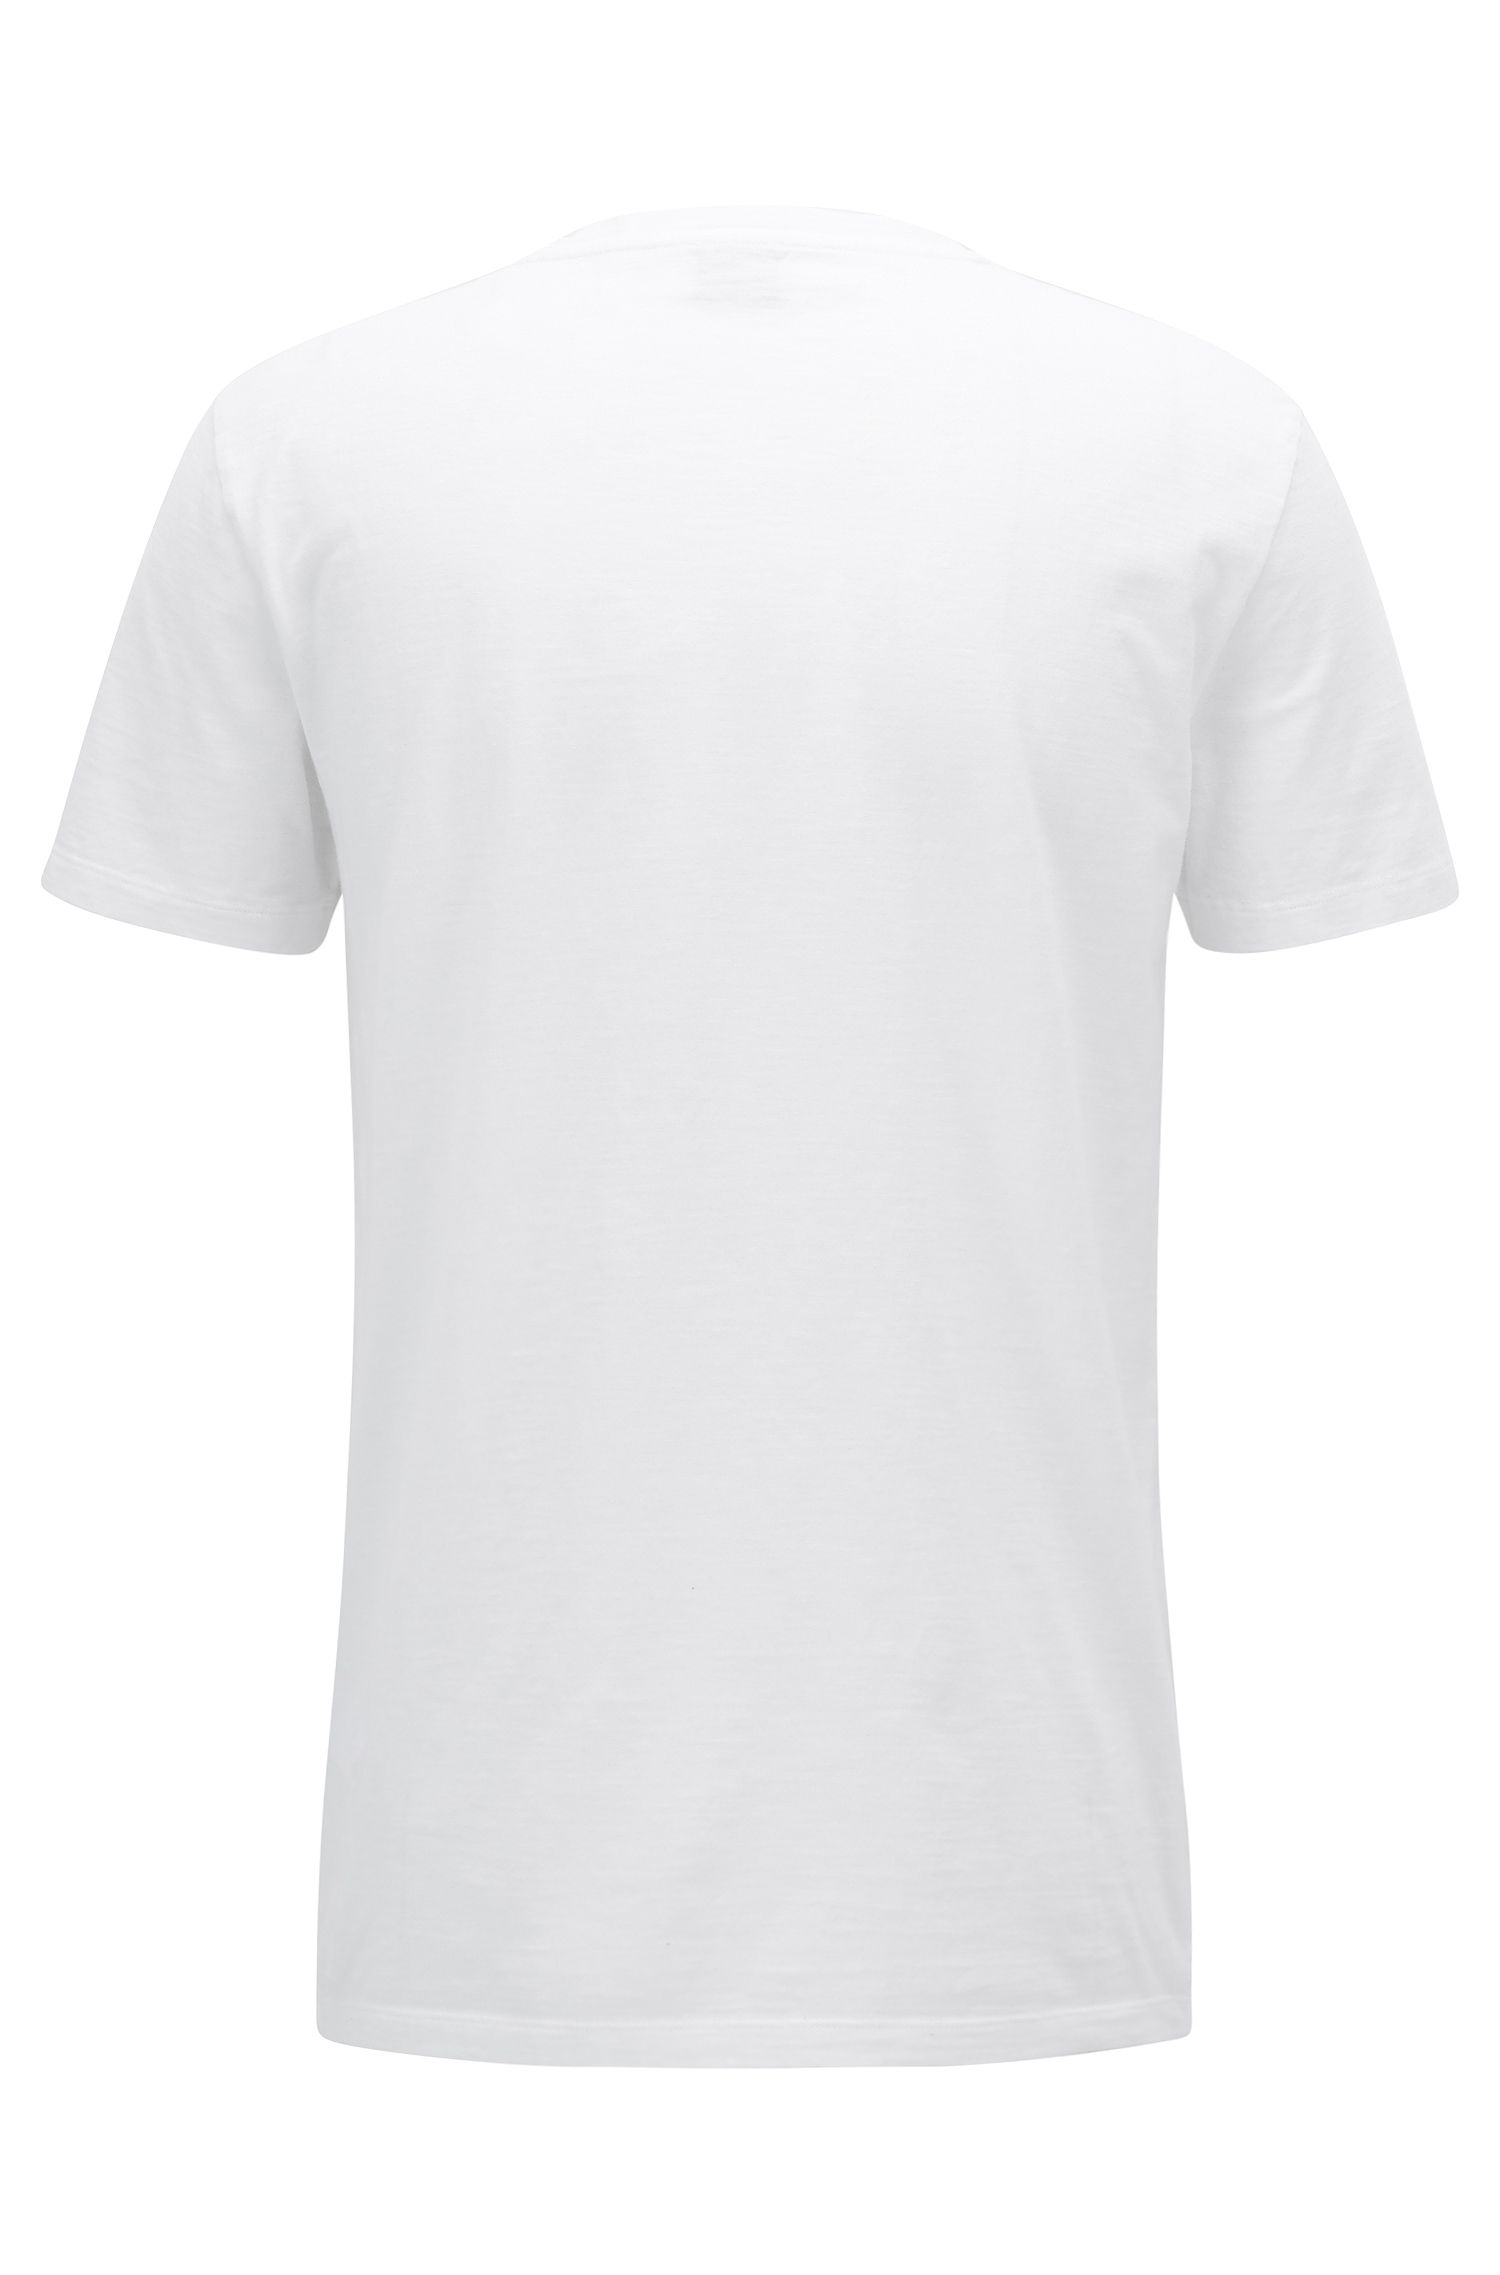 Photo-print slub-cotton T-shirt in a relaxed fit